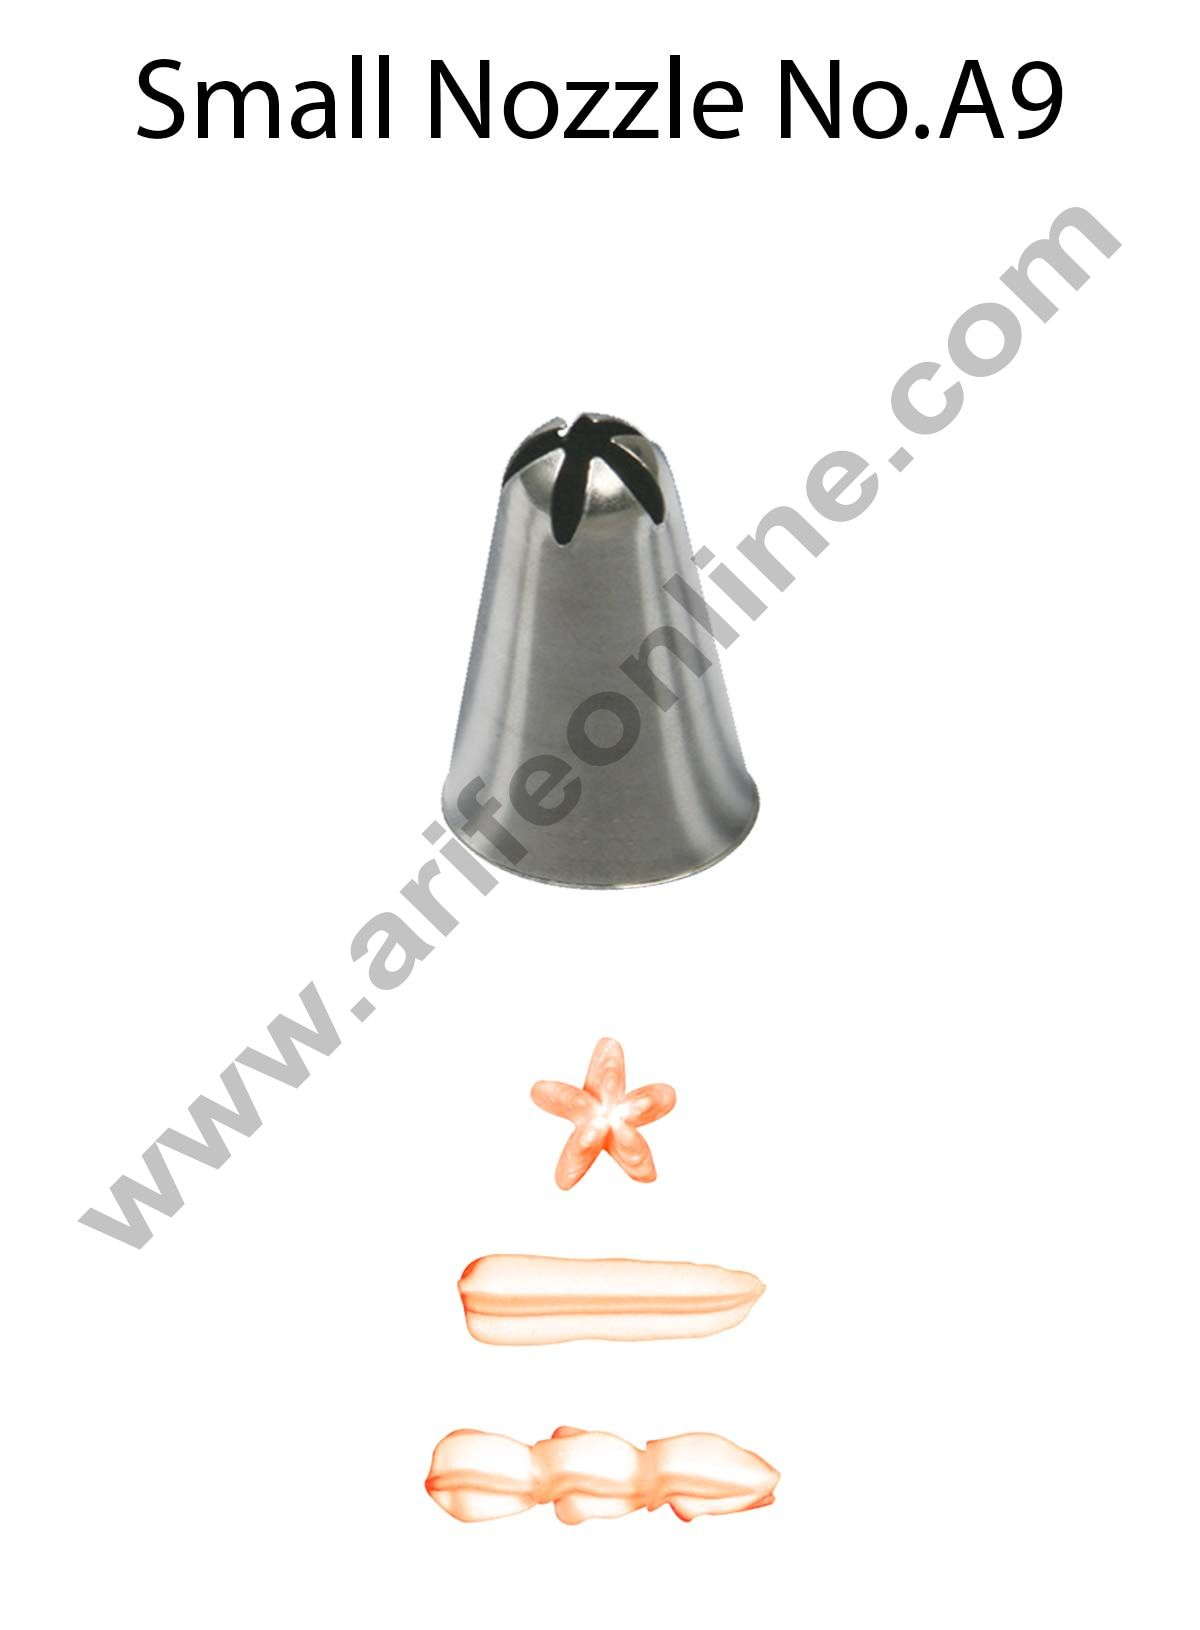 Cake Decor Small Nozzle - No. A9 Closed Star Piping Nozzle